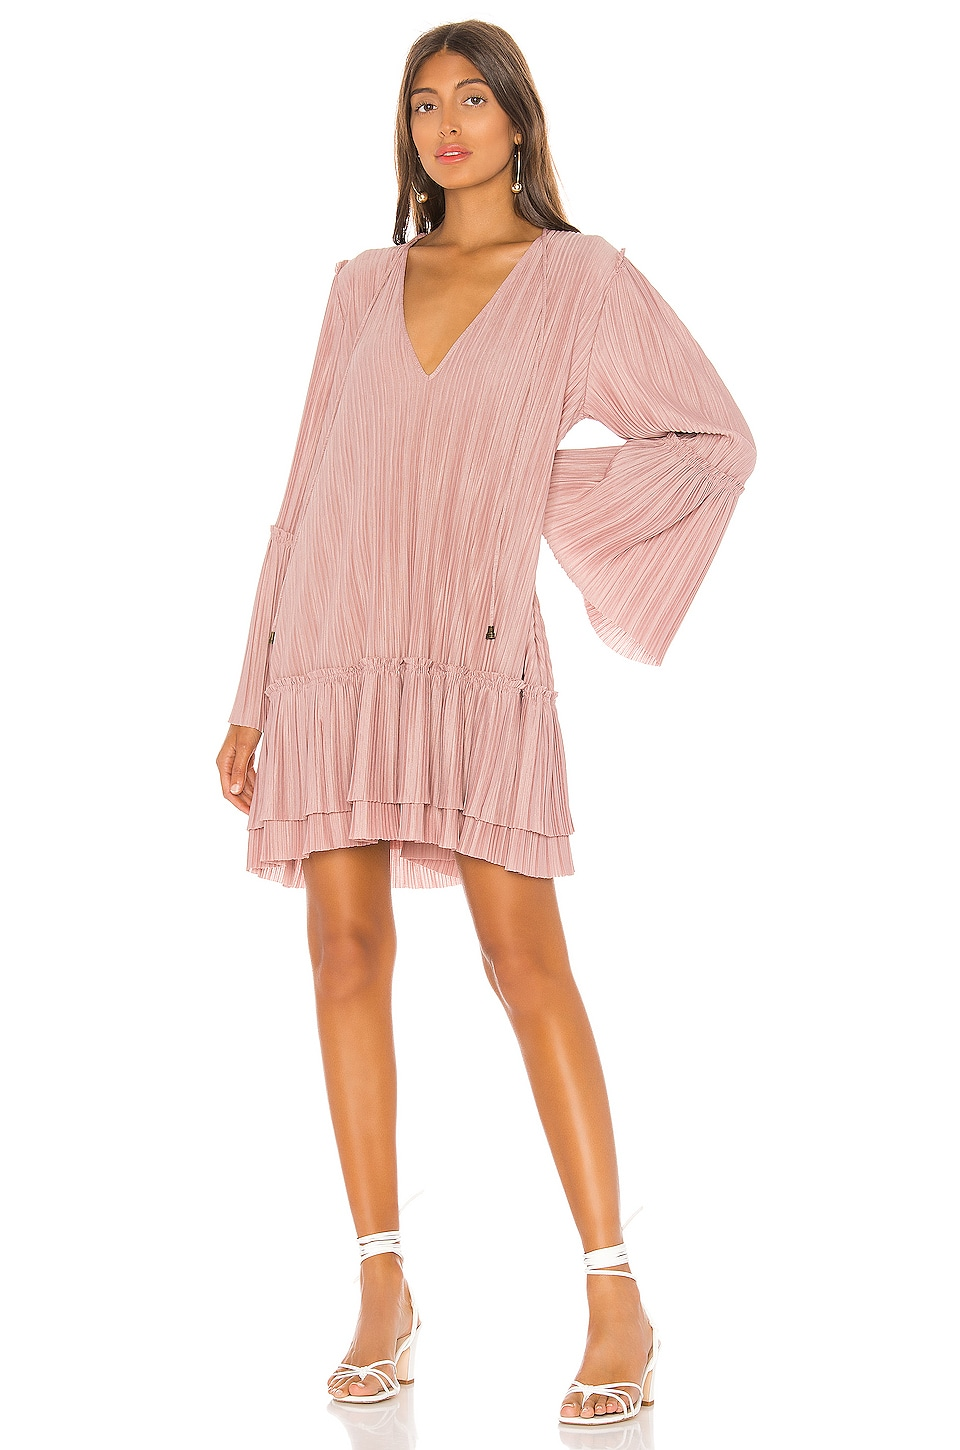 Free People Cant Help It Mini Dress in Pink